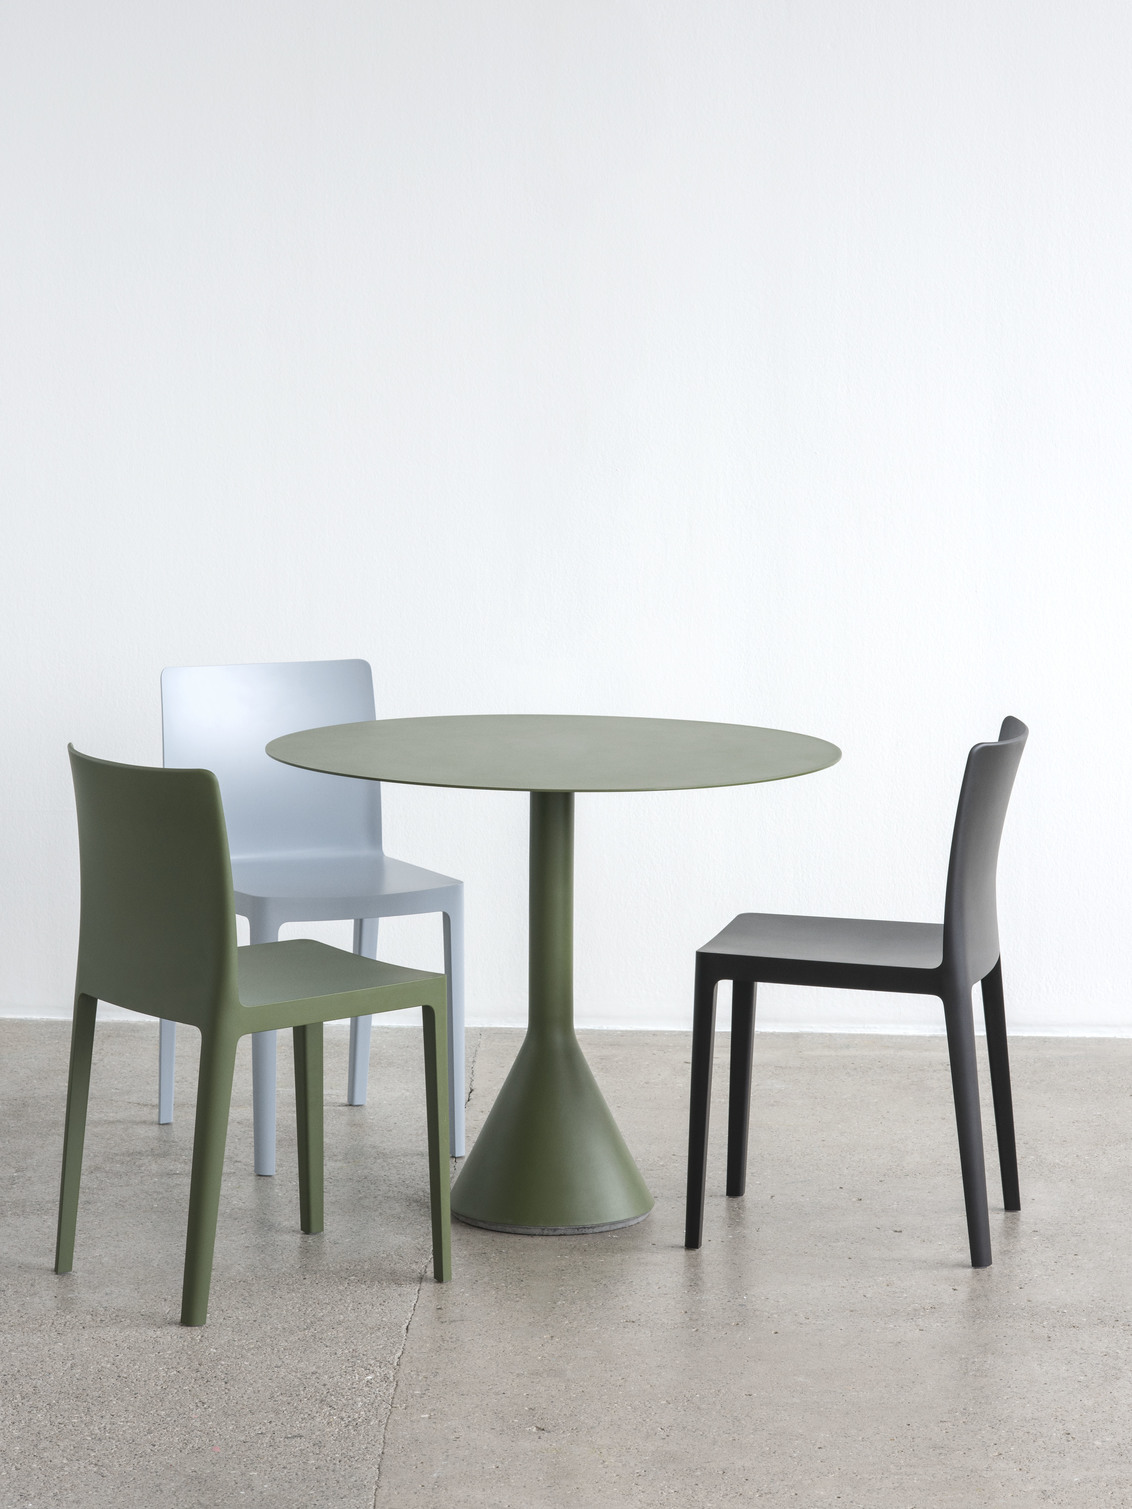 Elementaire Chair antracite olive blue grey_Palissade Cone Table olive.jpg